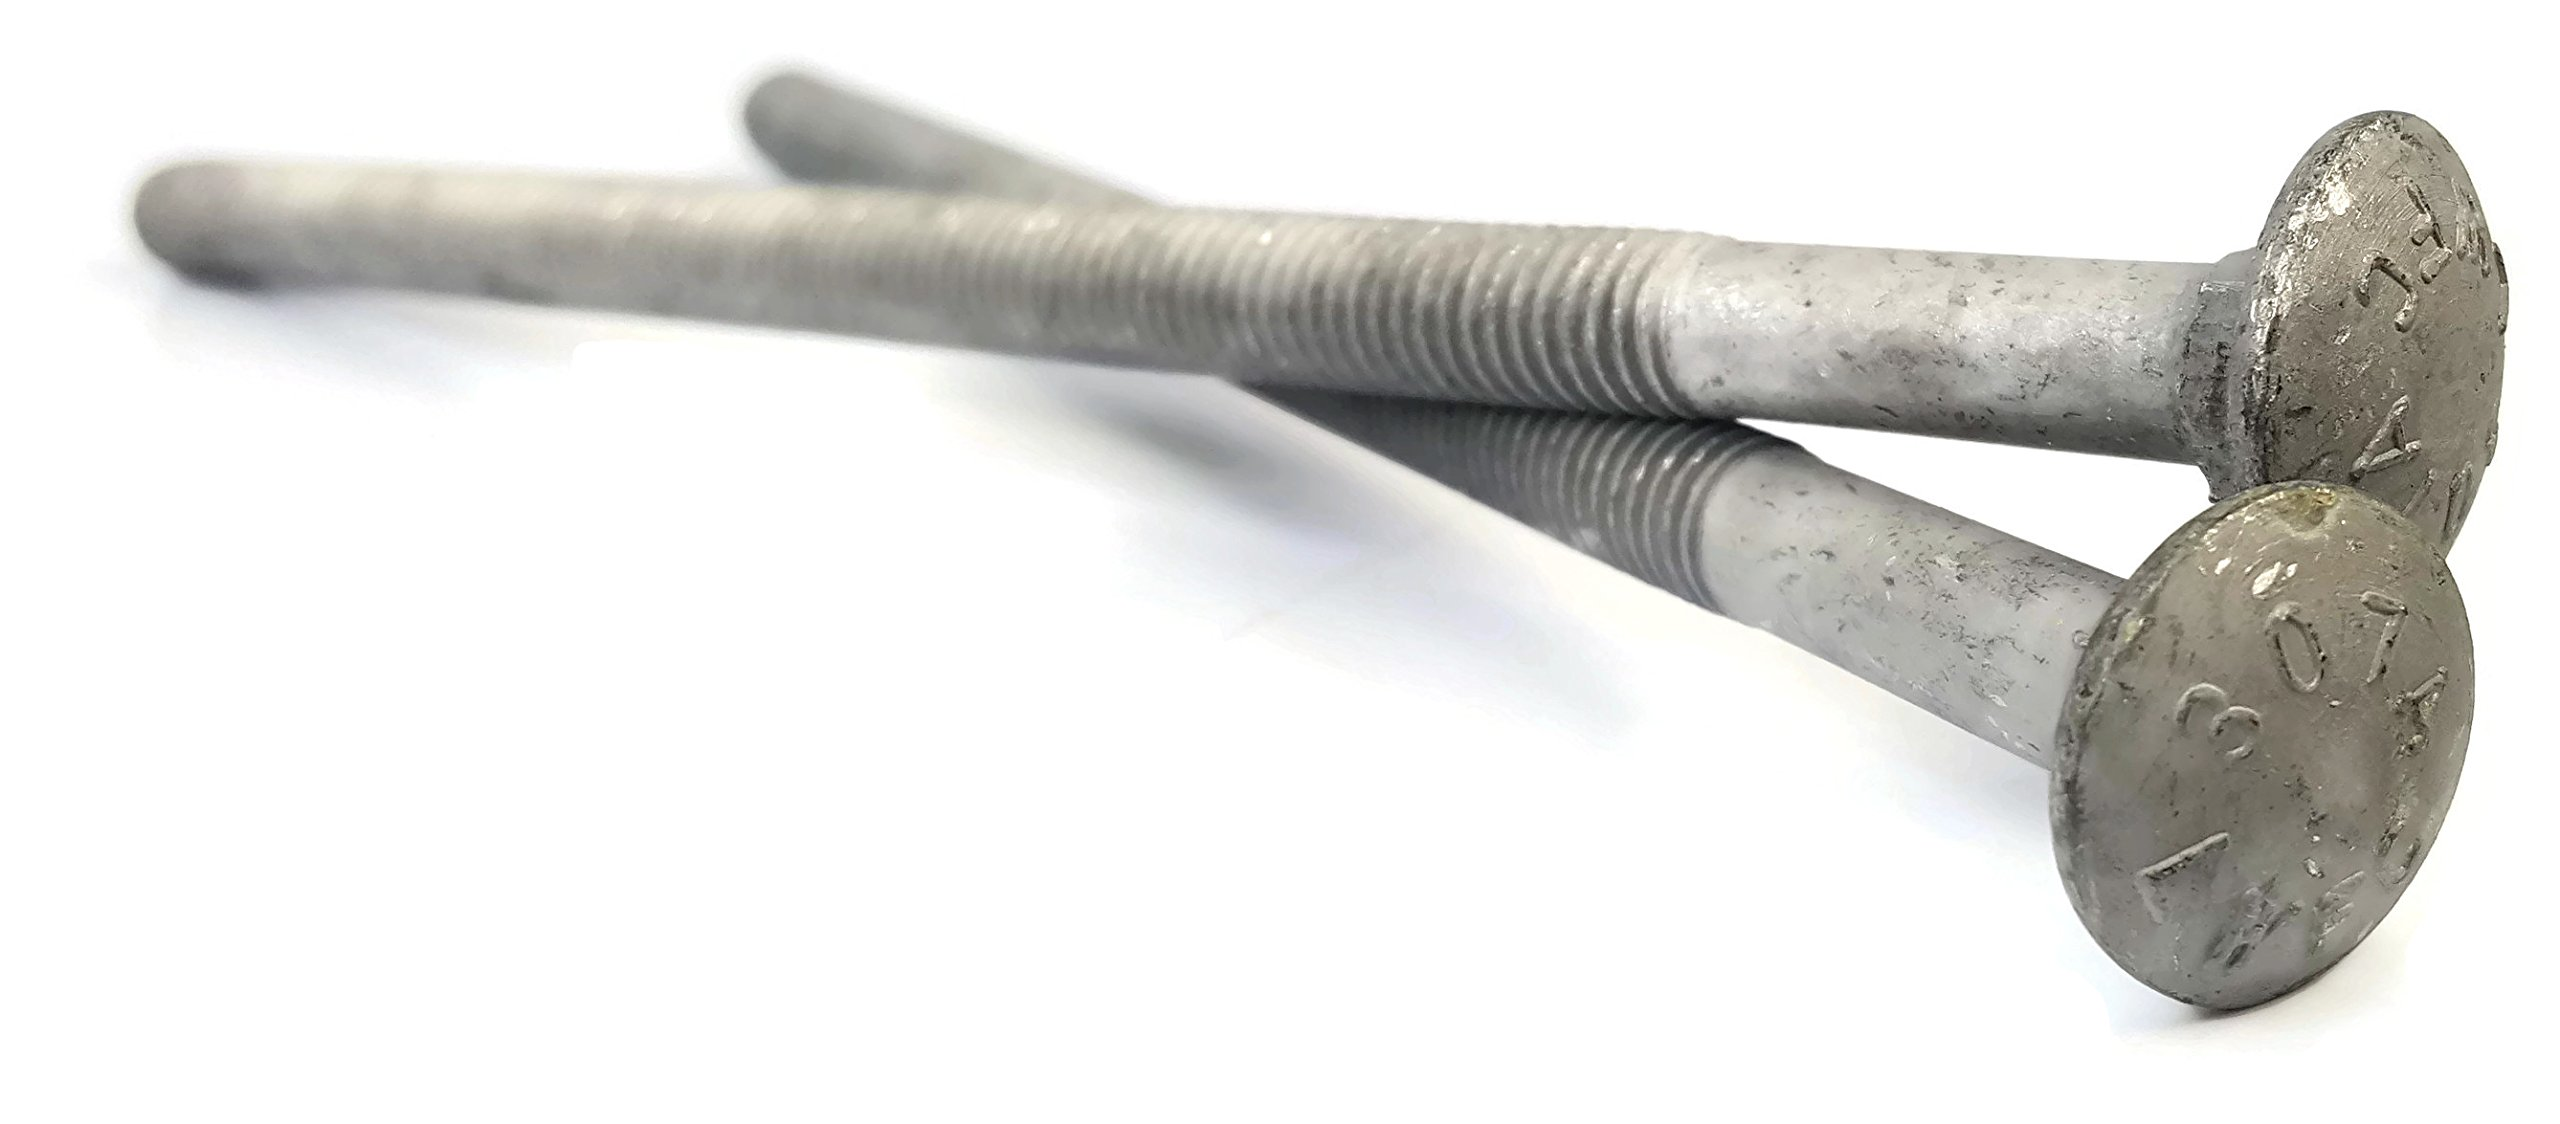 Carriage Bolt Hot Dipped Galvanized - 3/8-16 x 8 PT - Qty-25